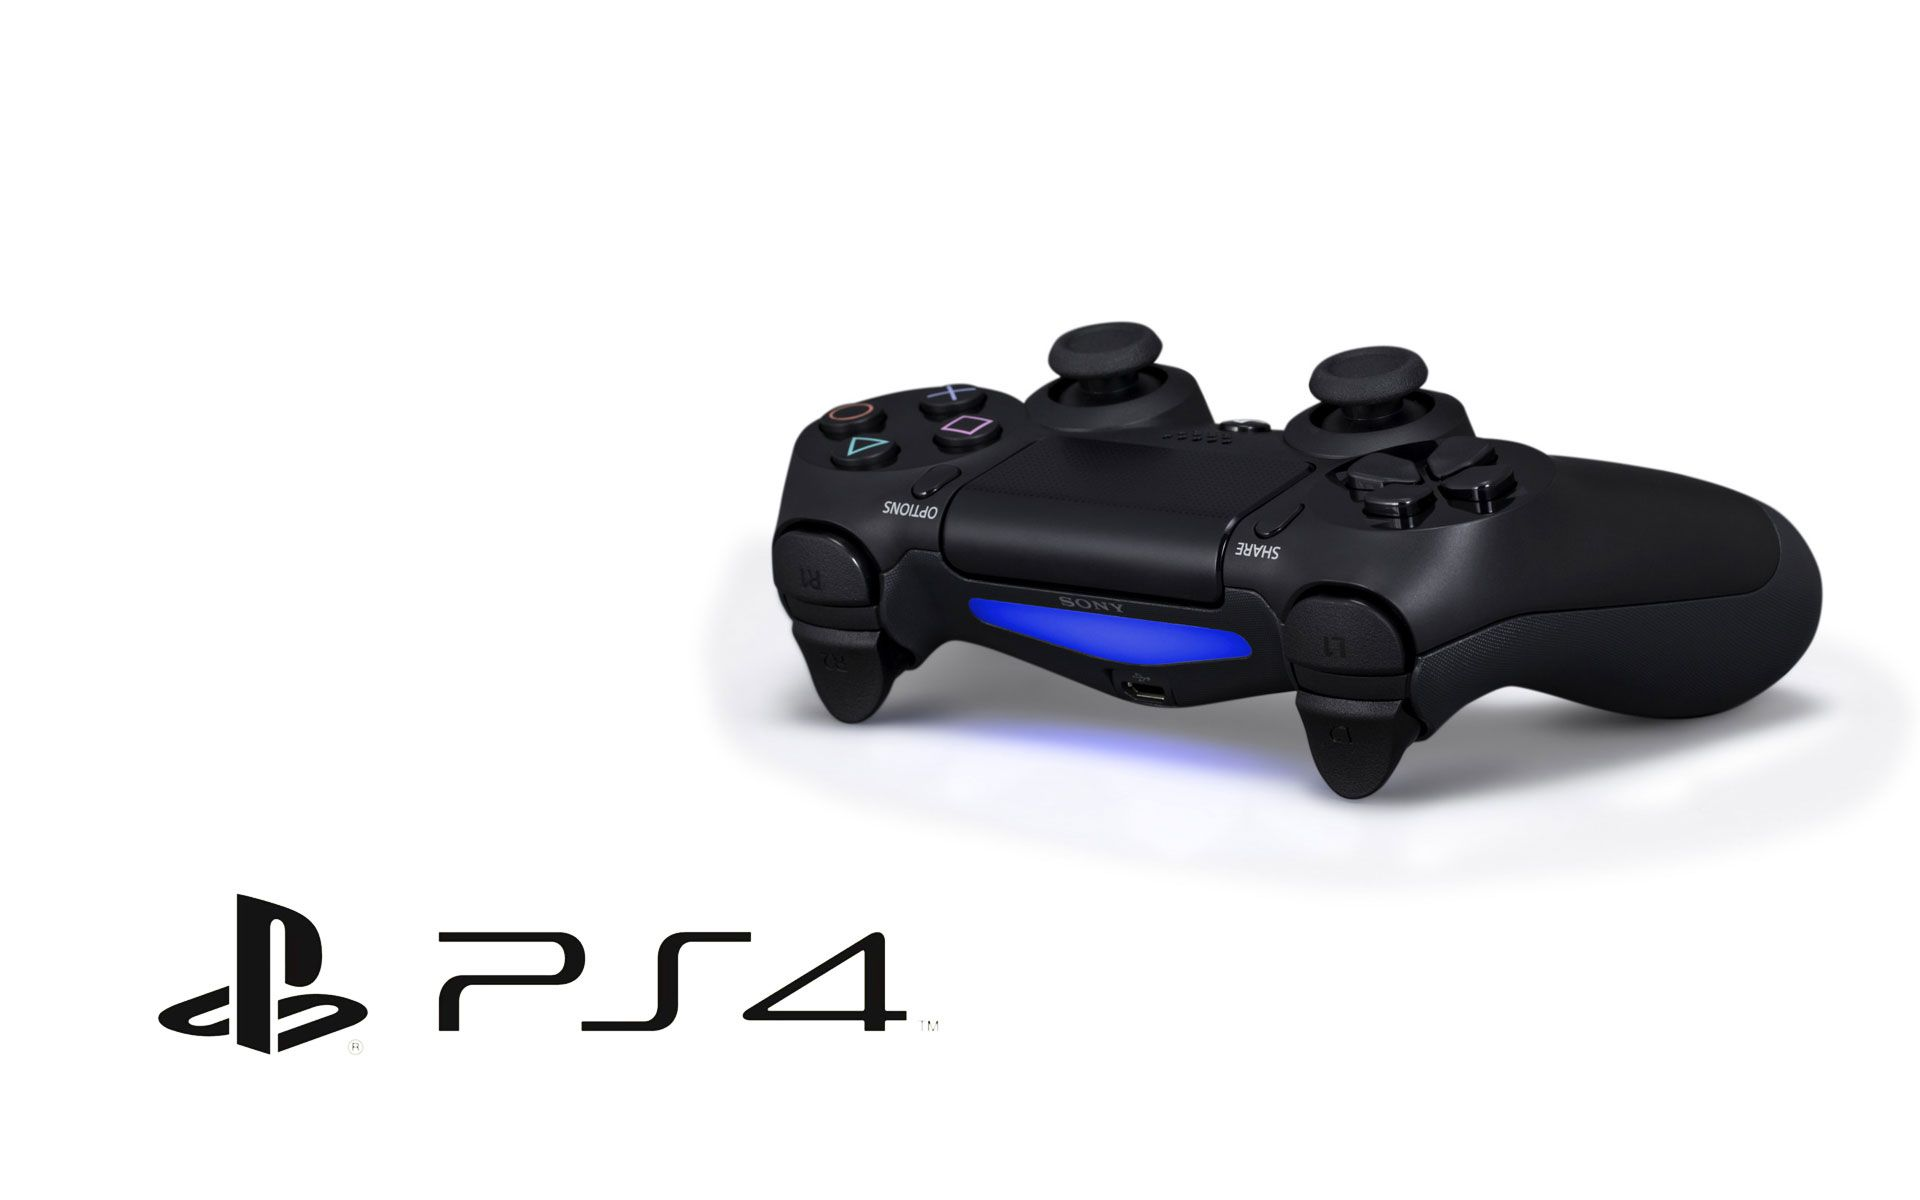 Ps4 controller hd wallpapers in hd1 ultra hd abstract - Cool ps4 wallpapers ...